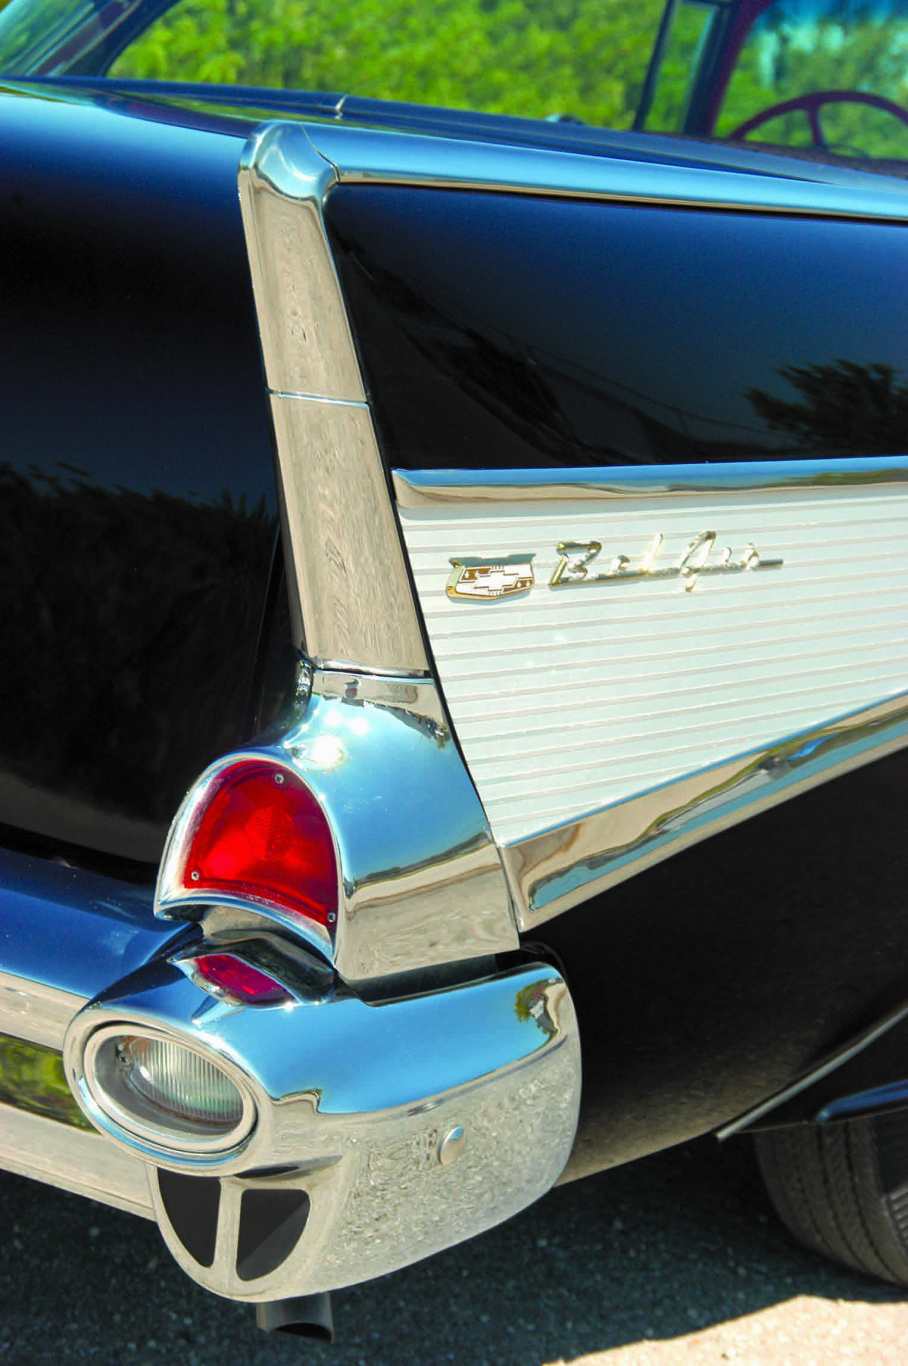 1957 Chevy Belair rear fin